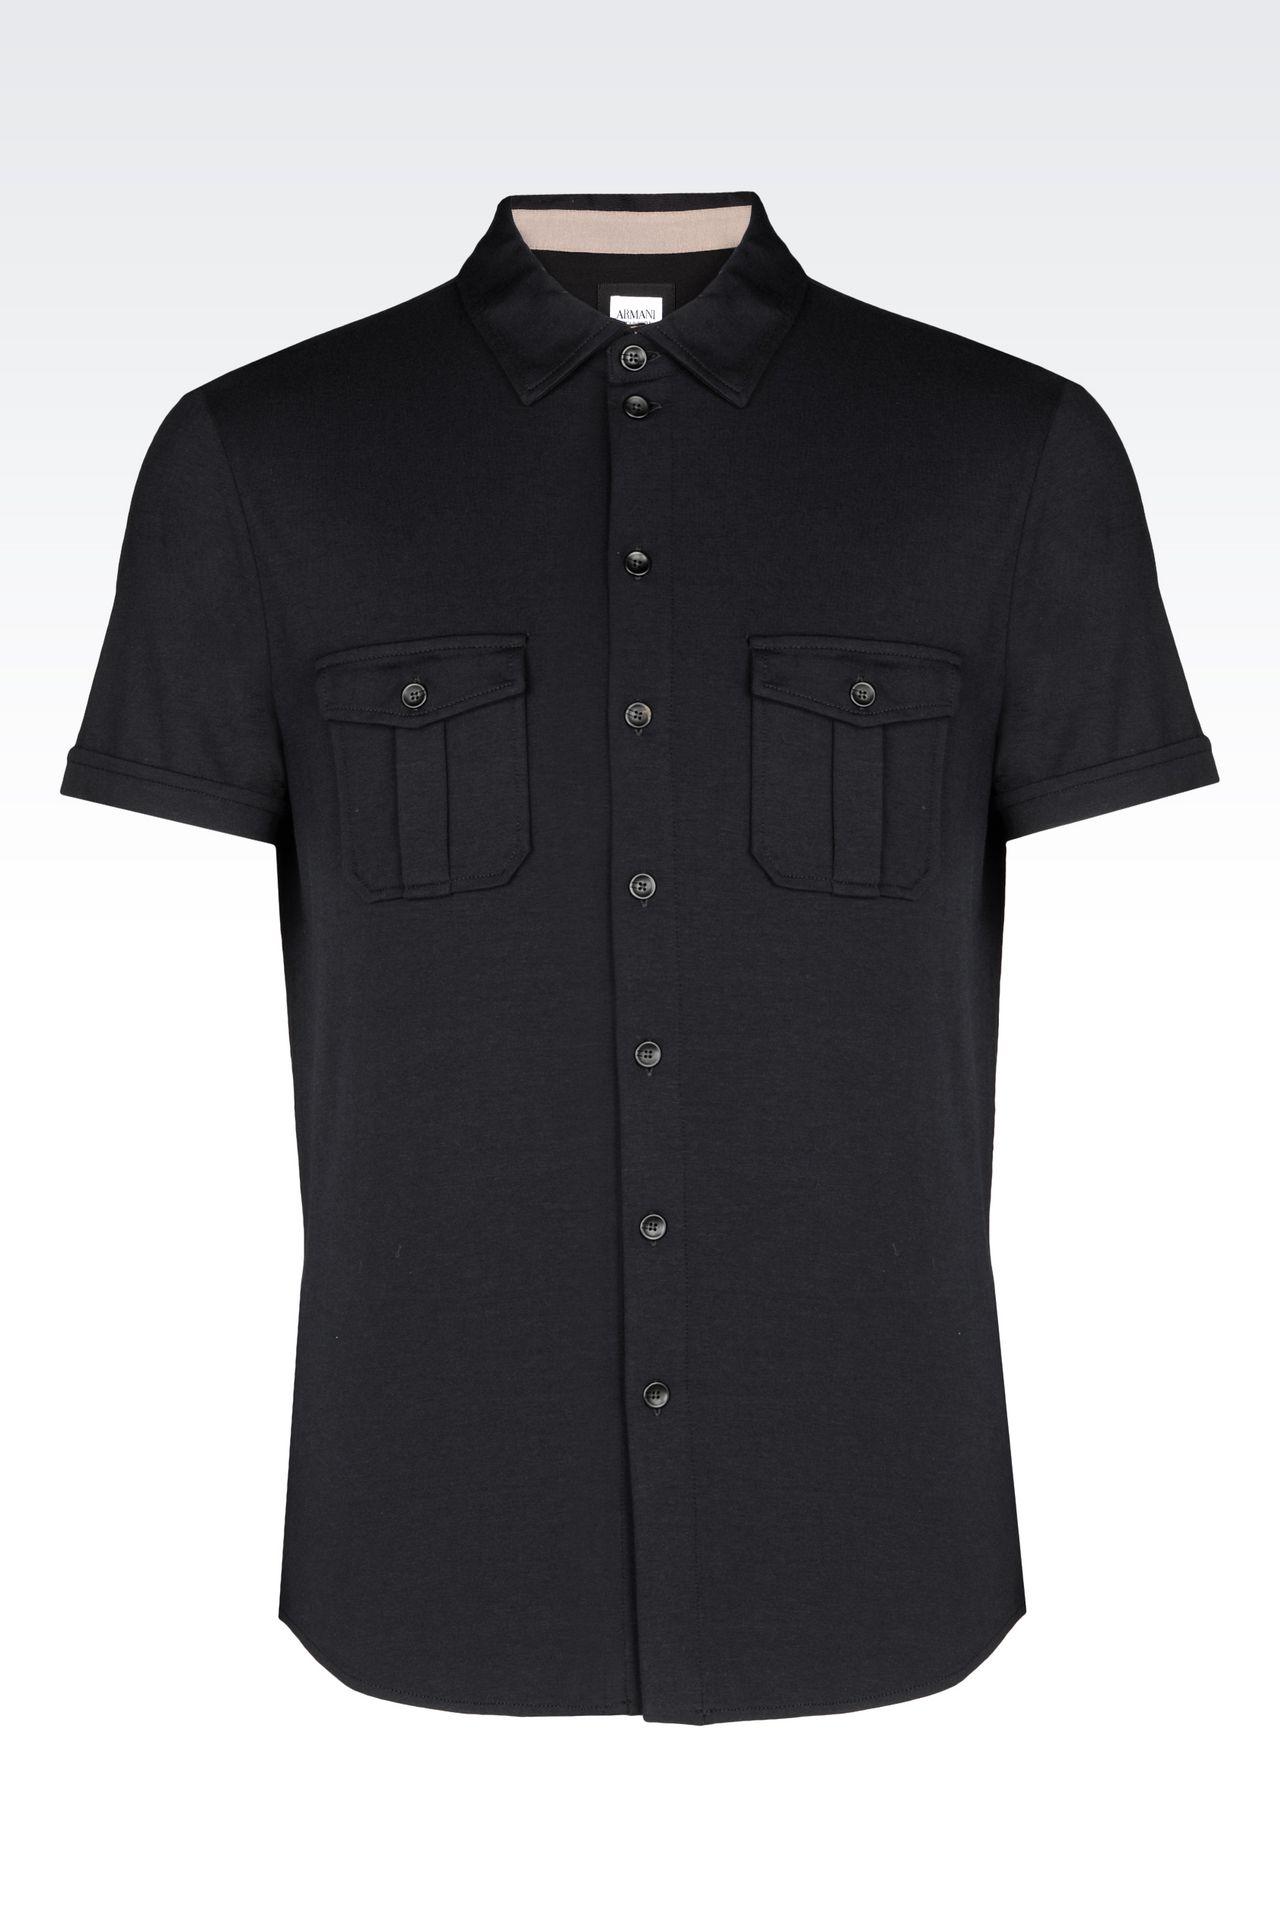 Short sleeve black shirt mens is shirt for Mens short sleve dress shirts